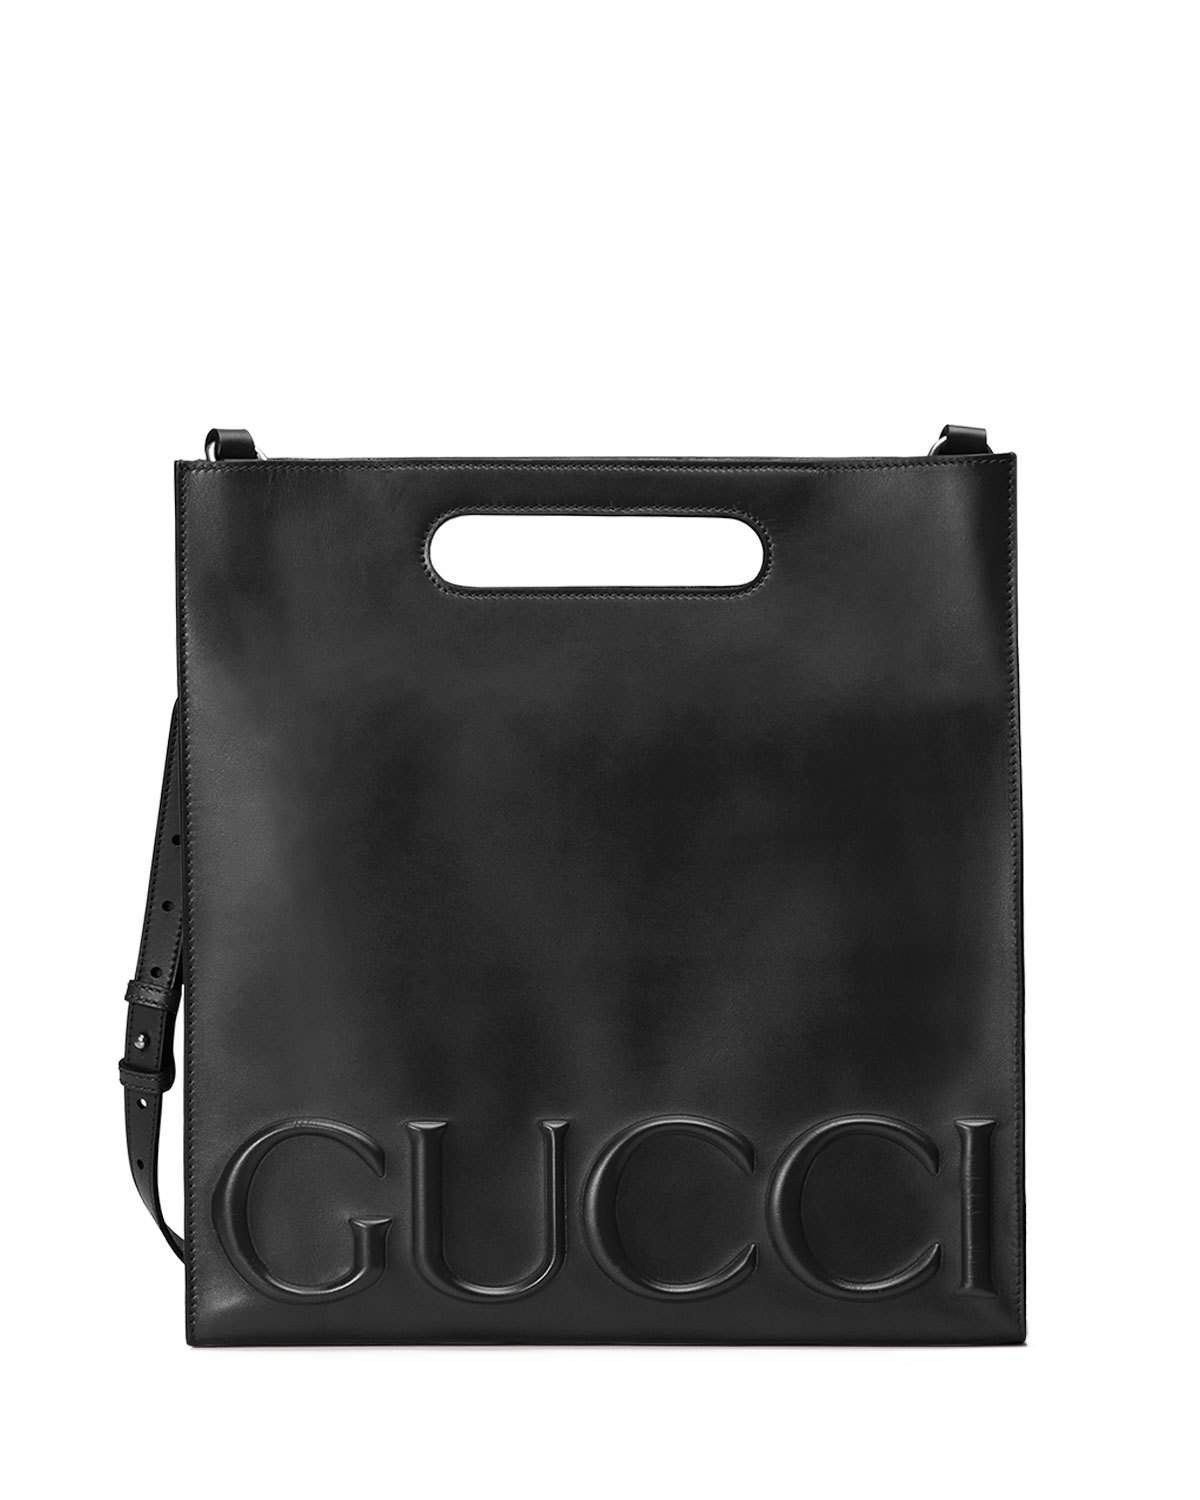 90521304c36928 Linea Gucci XL Leather Tote Bag, Black | Products | Suede tote bag ...